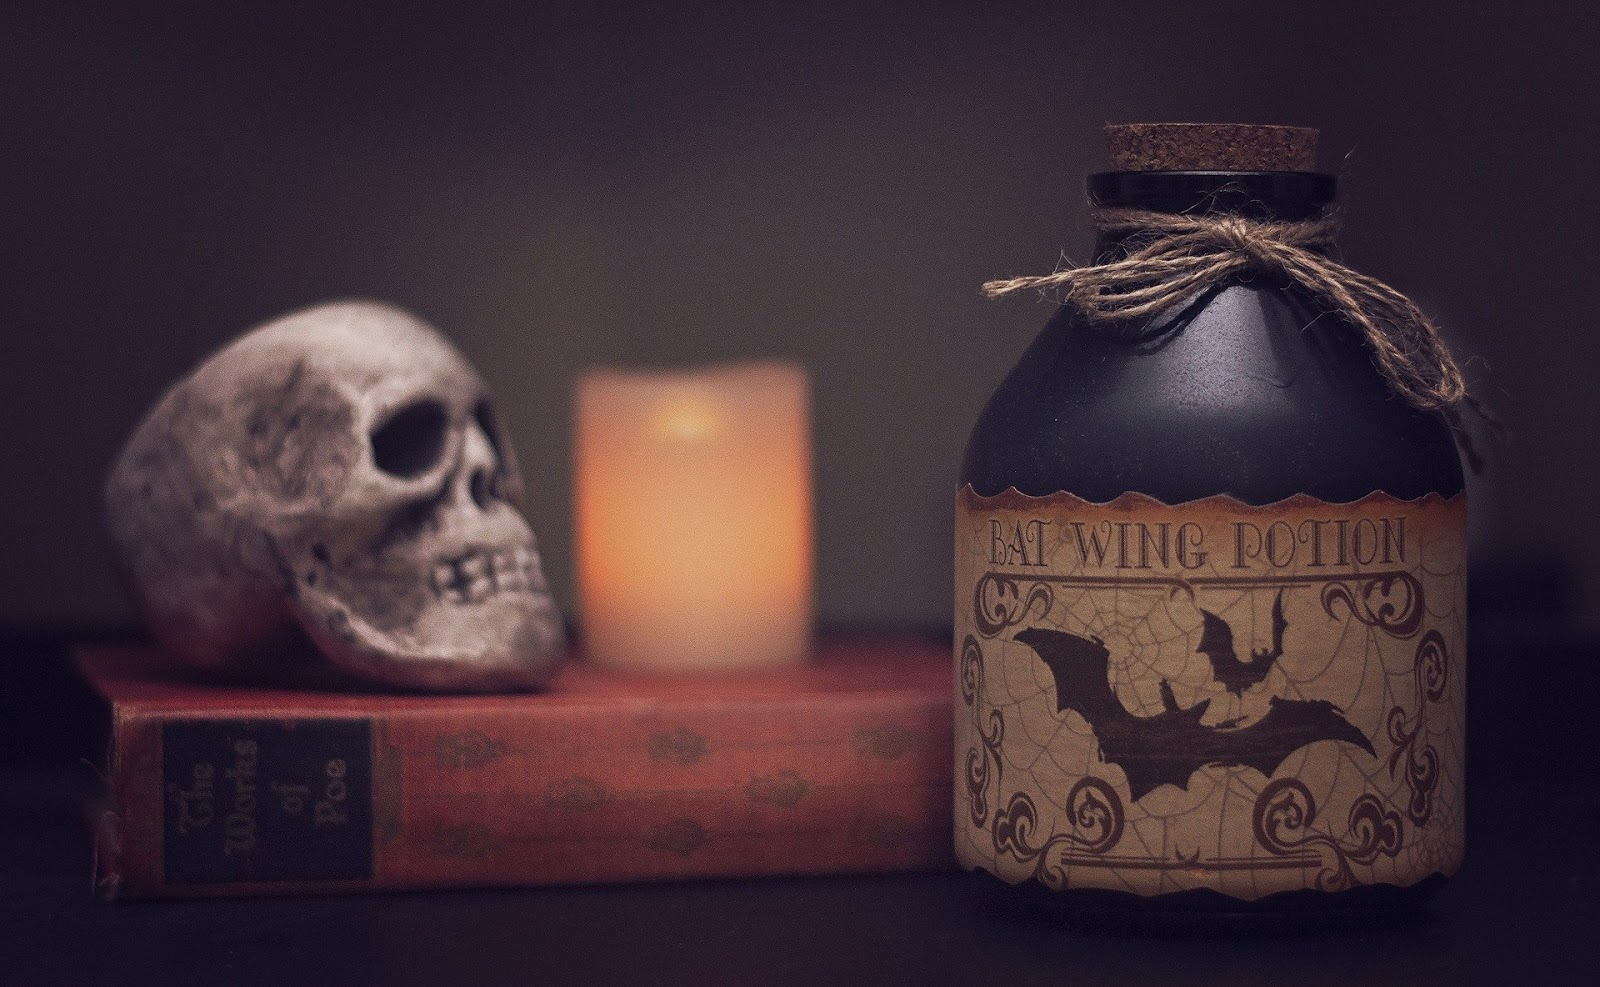 Book, skull, candle, potion Halloween decorations